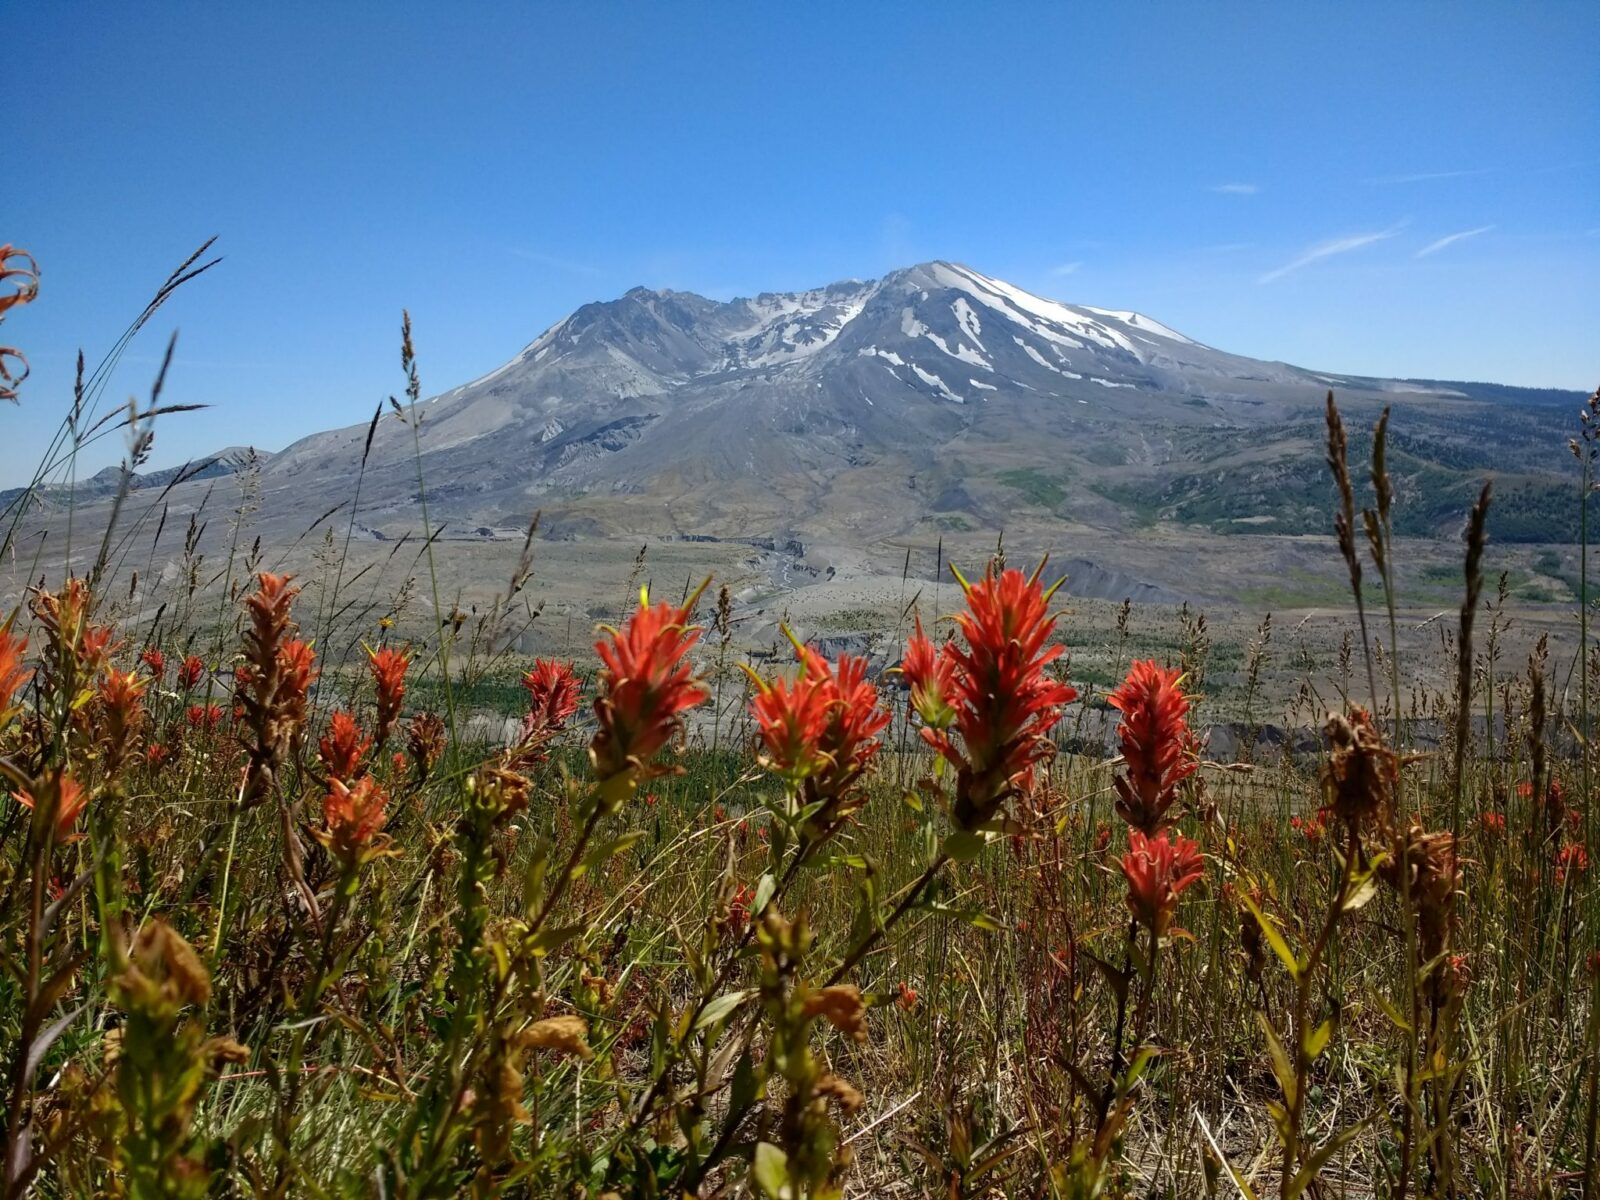 Volcano against a blue sky with red wildflowers in the foreground